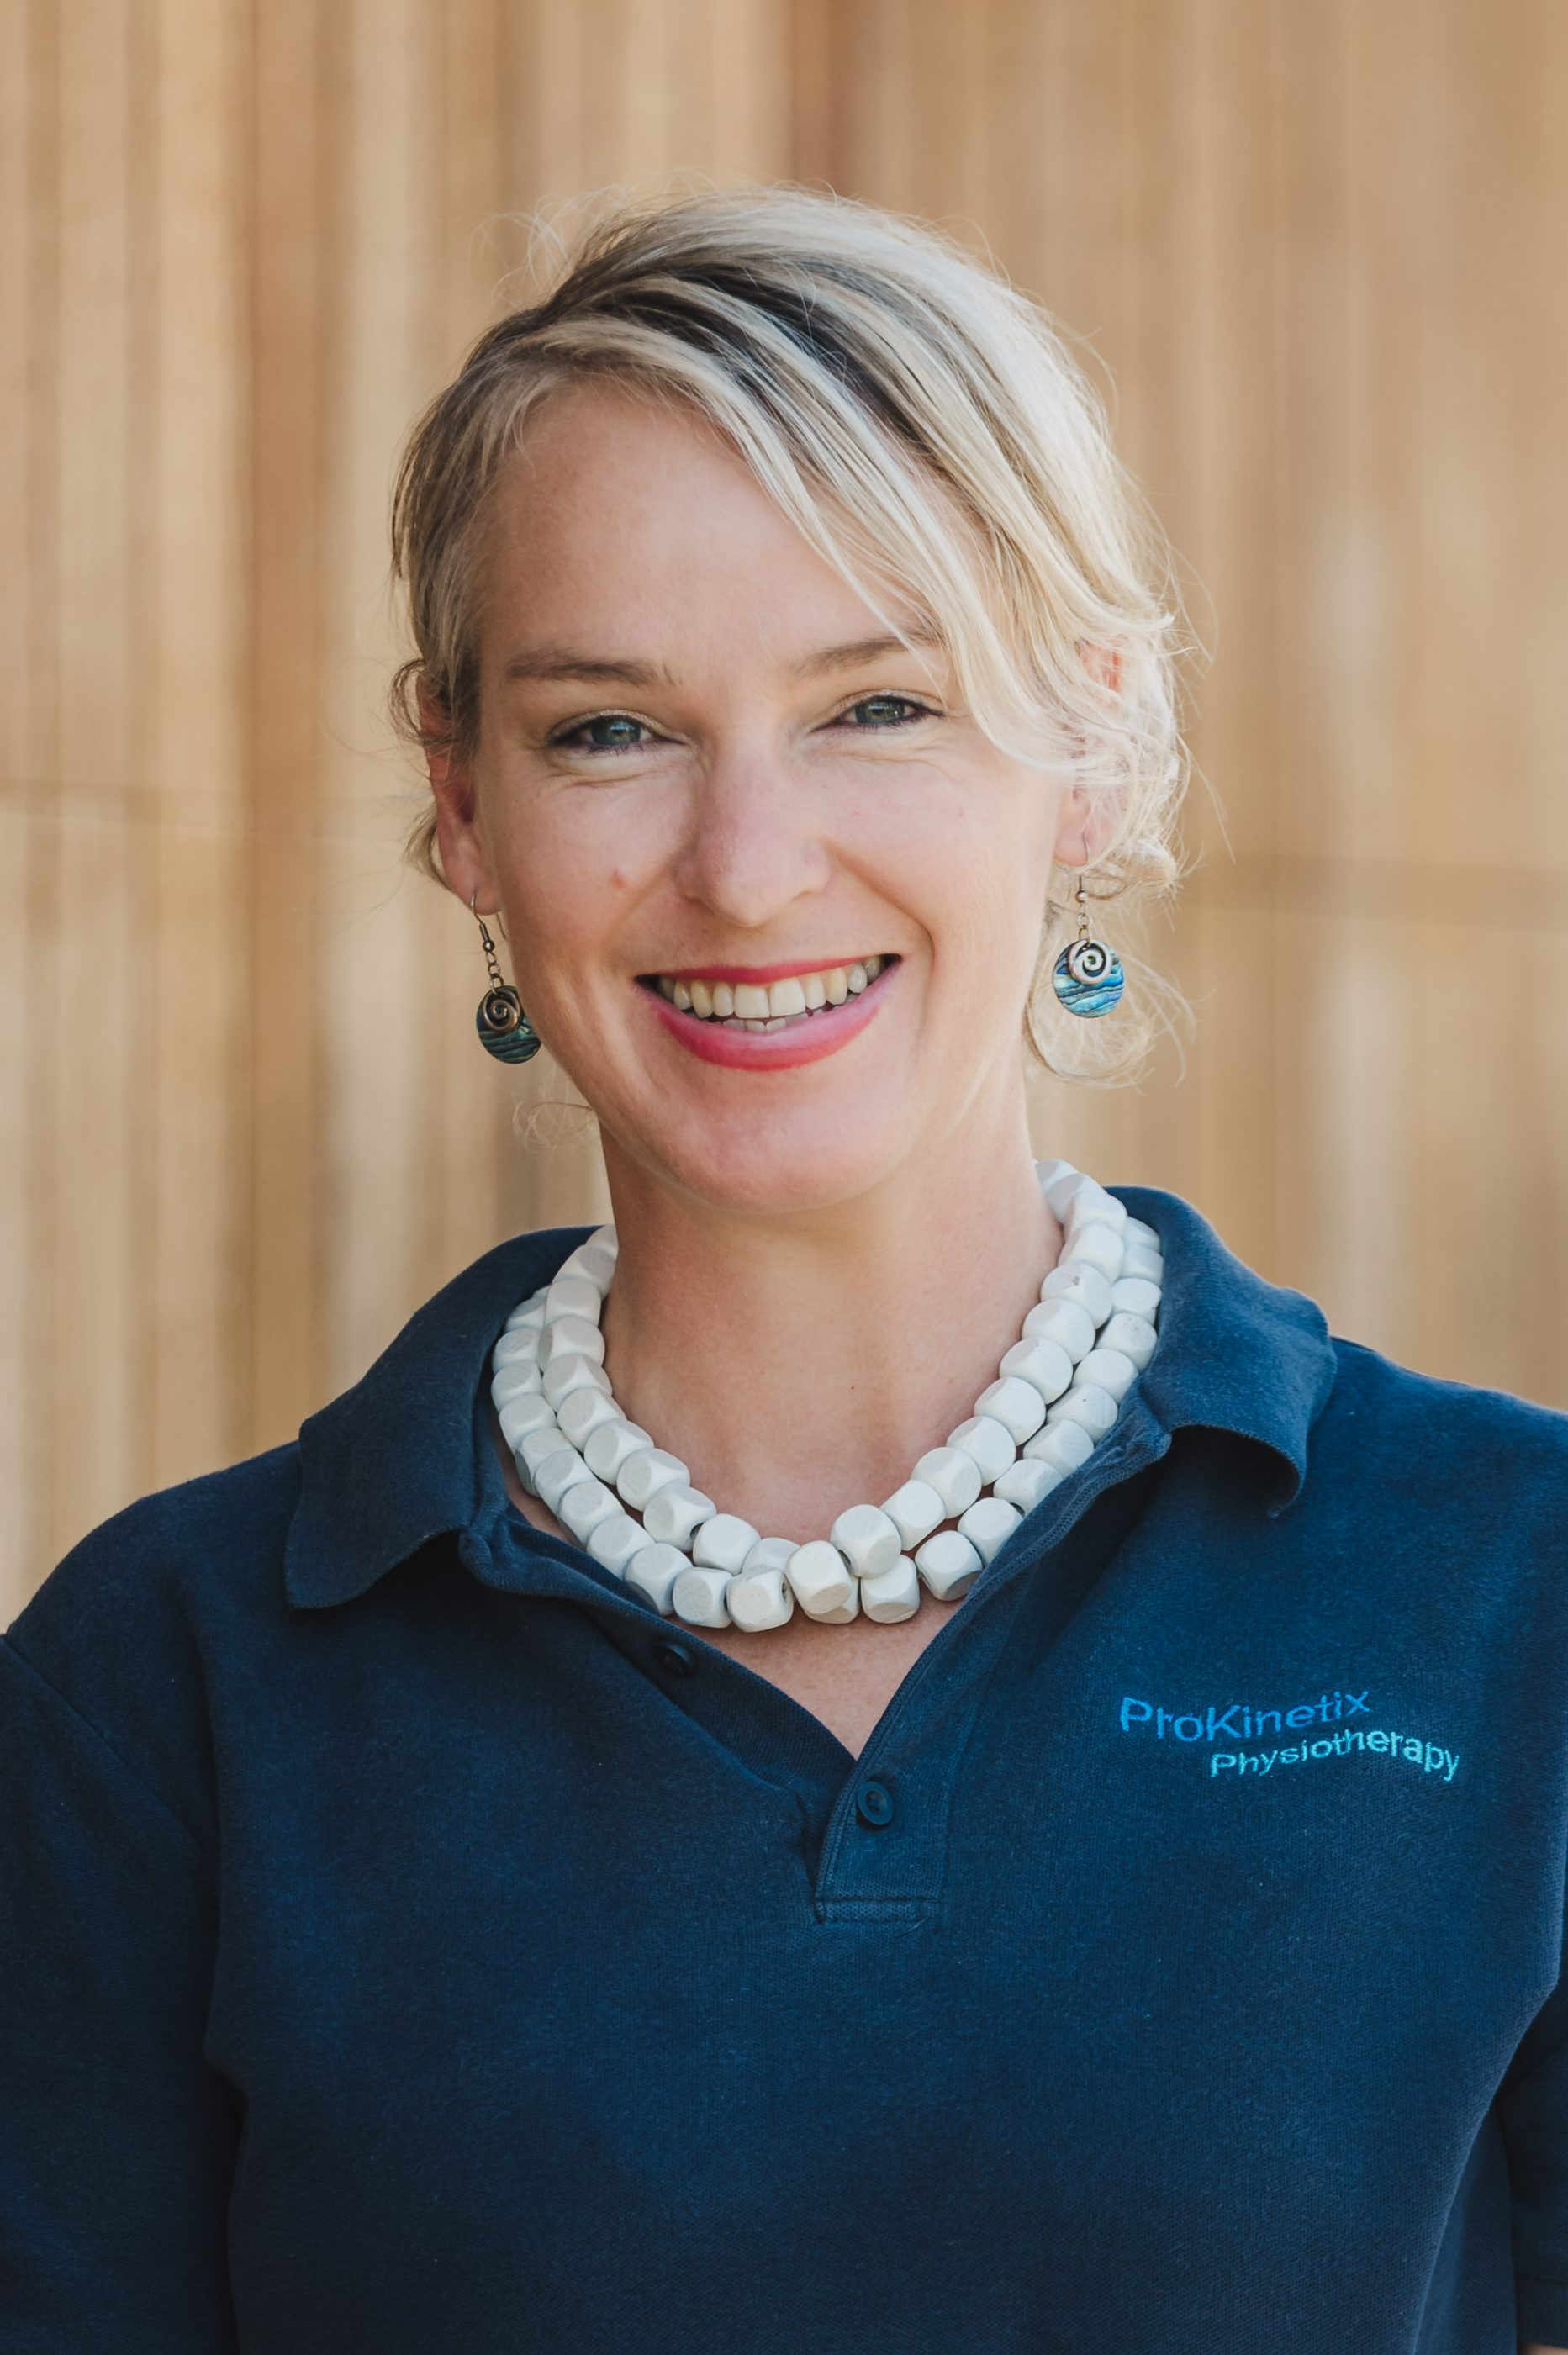 """Photo of a blonde woman wearing a white necklace, paua shell earring, and a blue polo shirt that reads, """"ProKinetix Physiotherapy"""". She is smiling."""